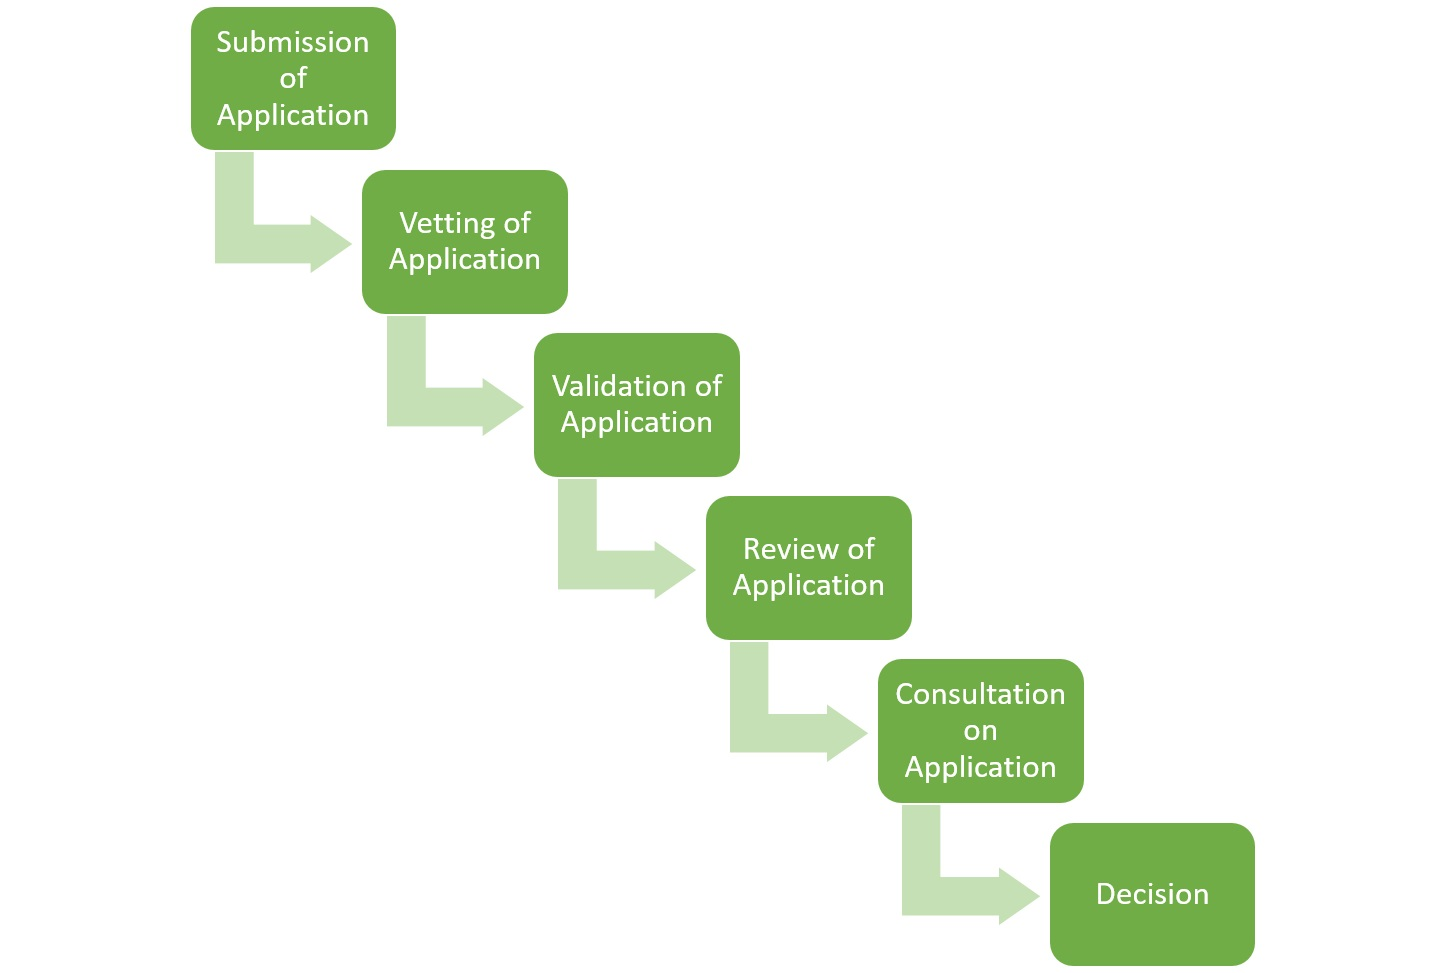 Description of the permitting process - Submission of Application - Vetting of Application - Validation of Application - Review of Application - Consultation on Application - Decision